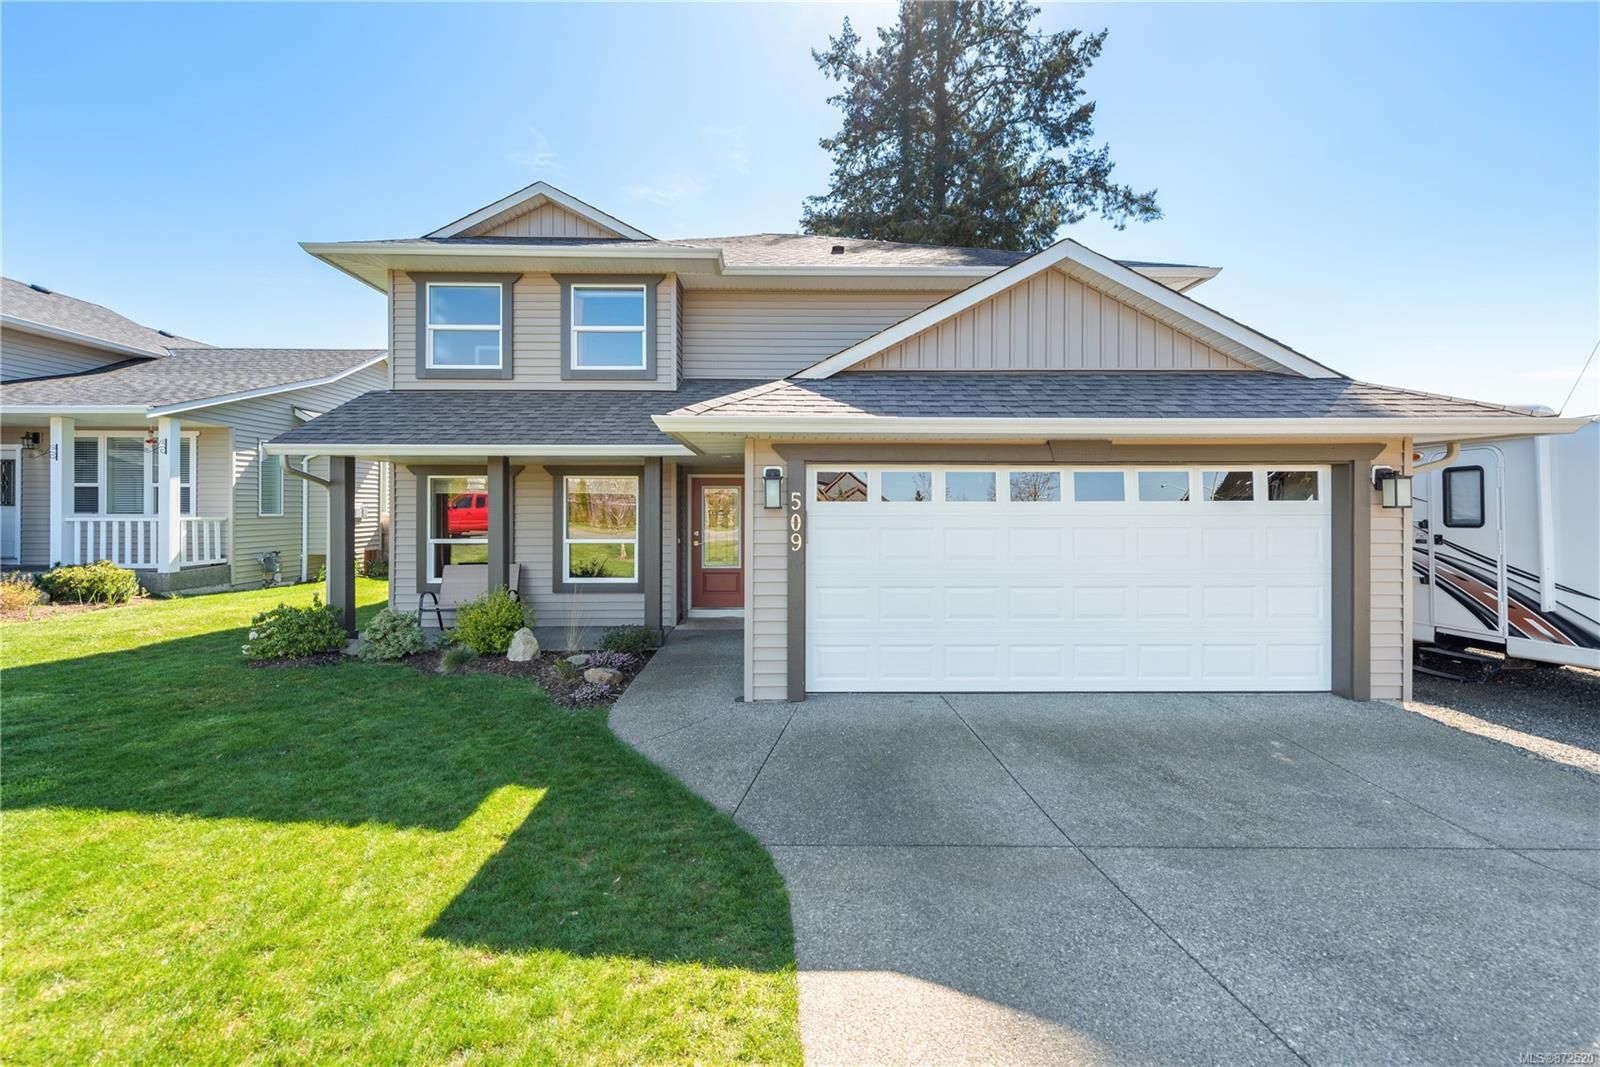 Main Photo: 509 Torrence Rd in : CV Comox (Town of) House for sale (Comox Valley)  : MLS®# 872520